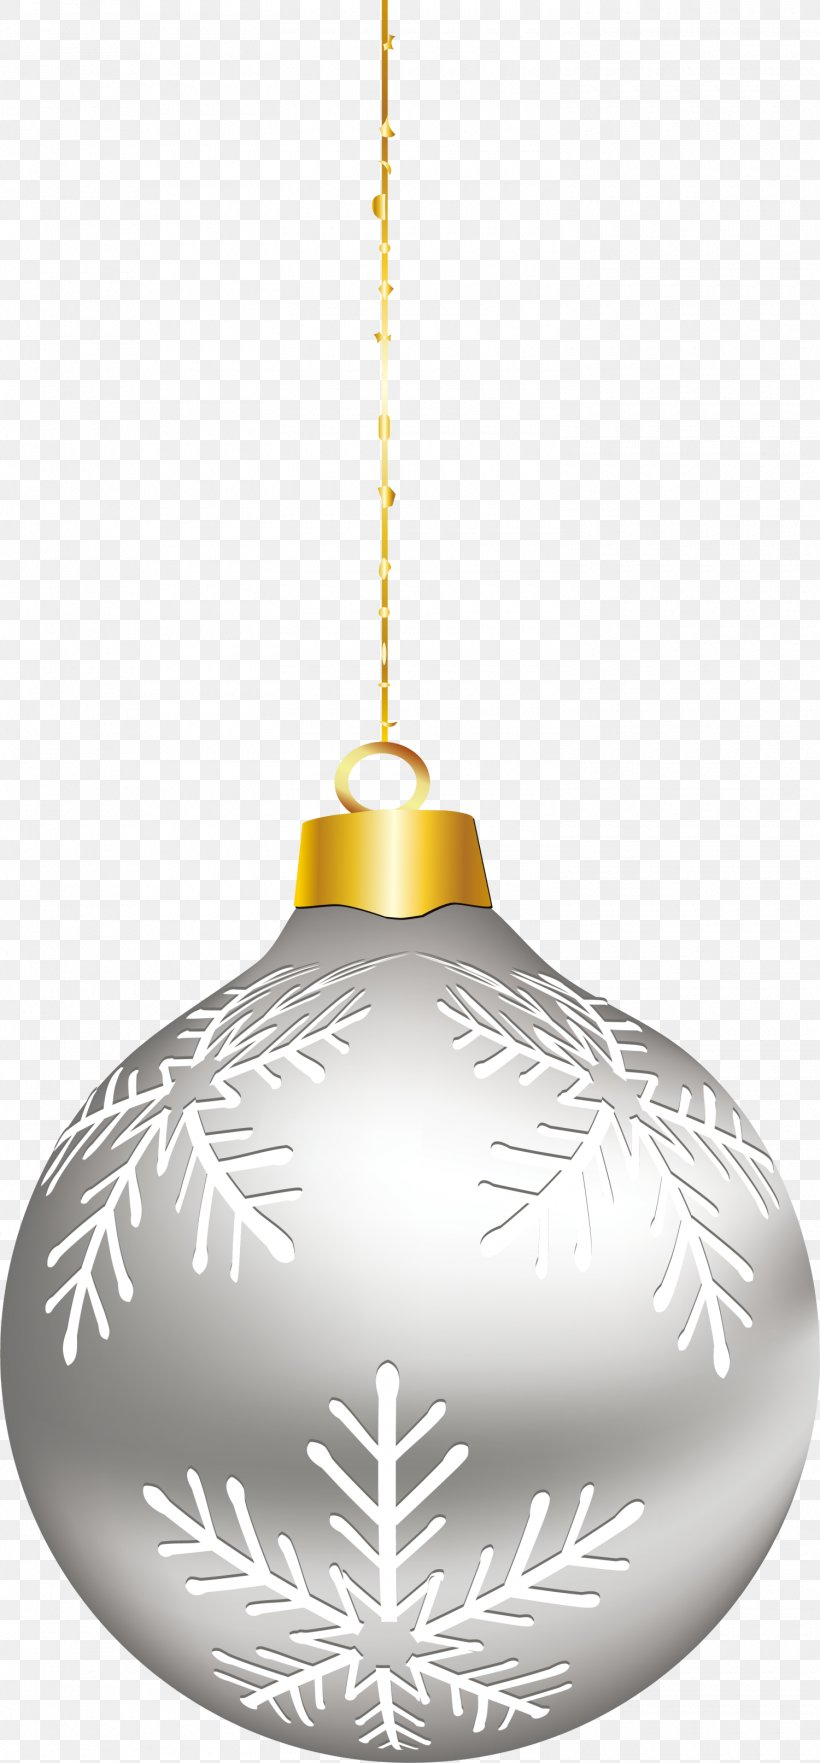 Silver Christmas Ornaments Png